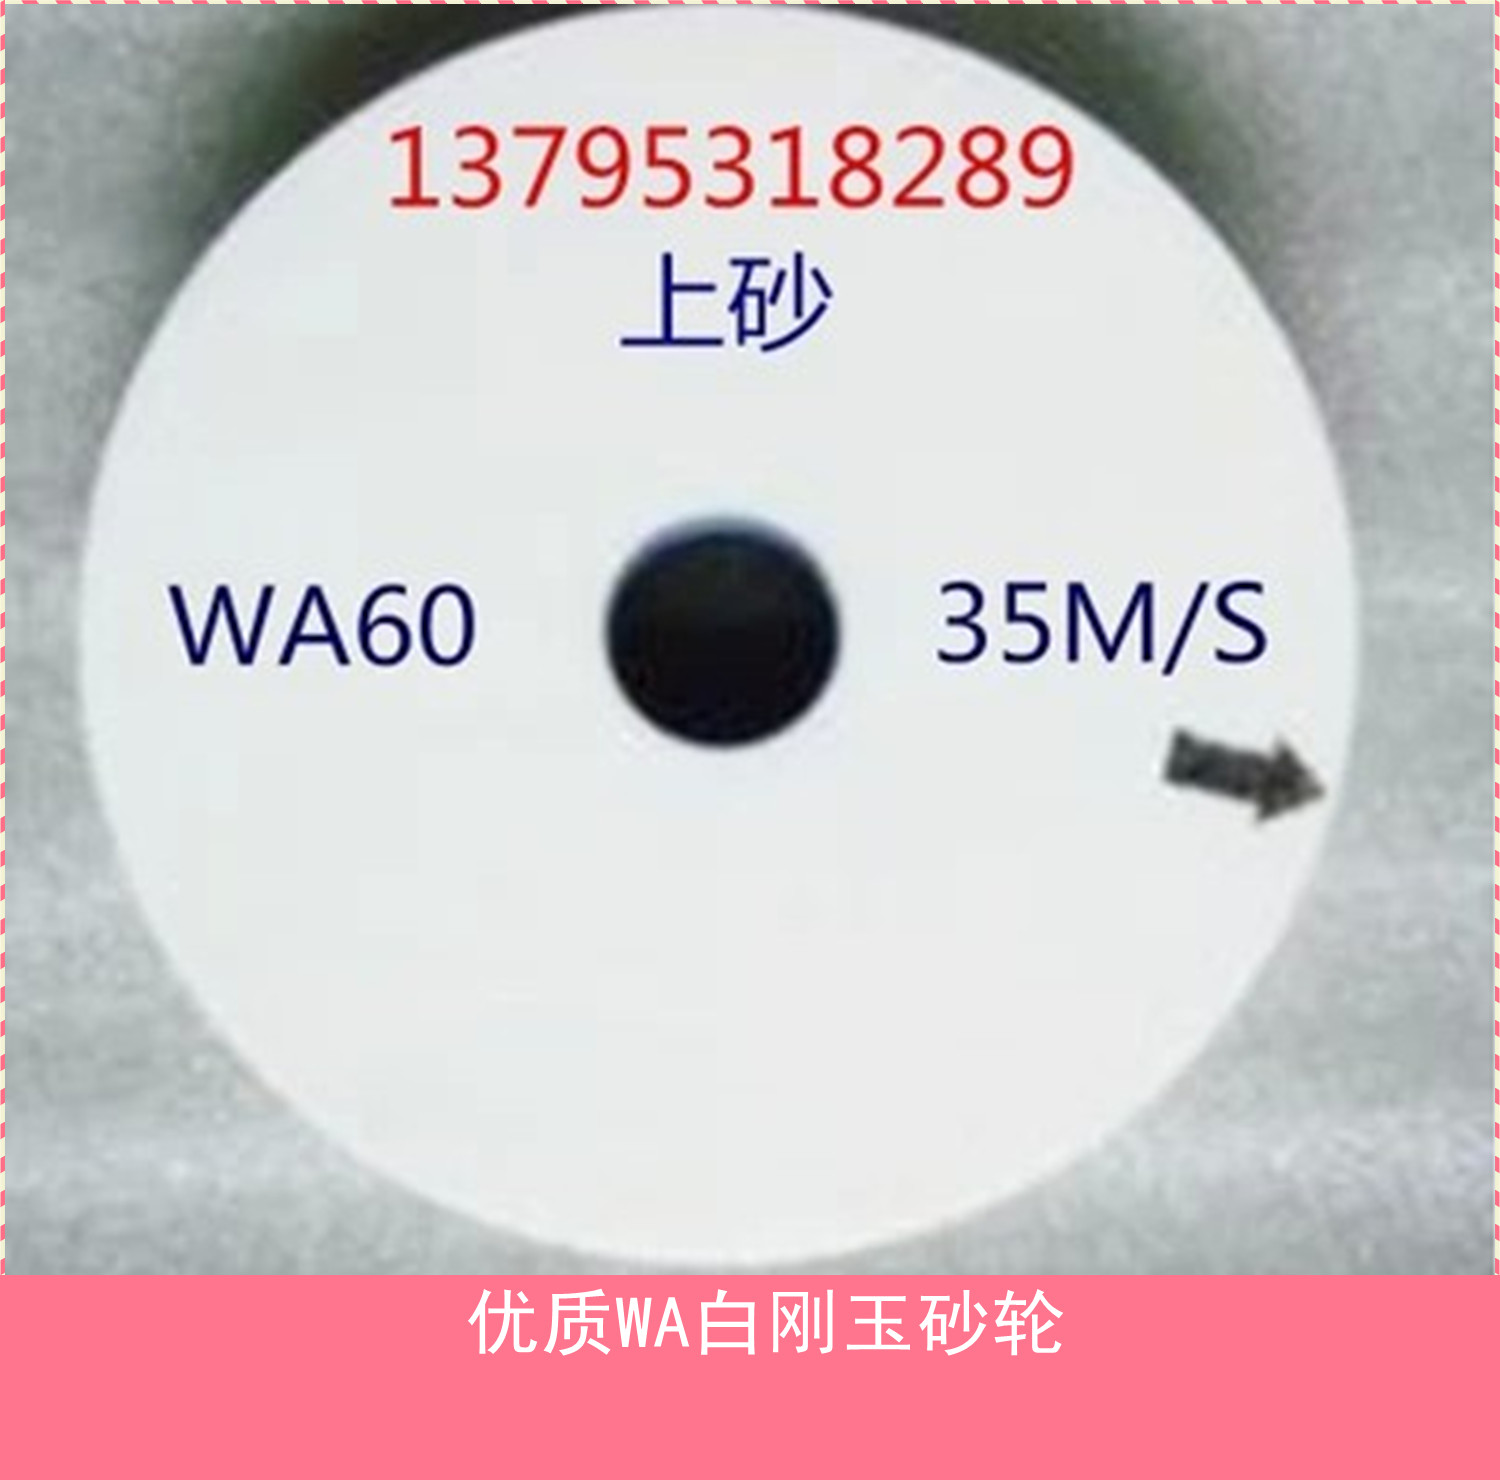 Grindingwheel white corundum thin grinding wheel special grinding wheel for white rigid knife 600*75*305